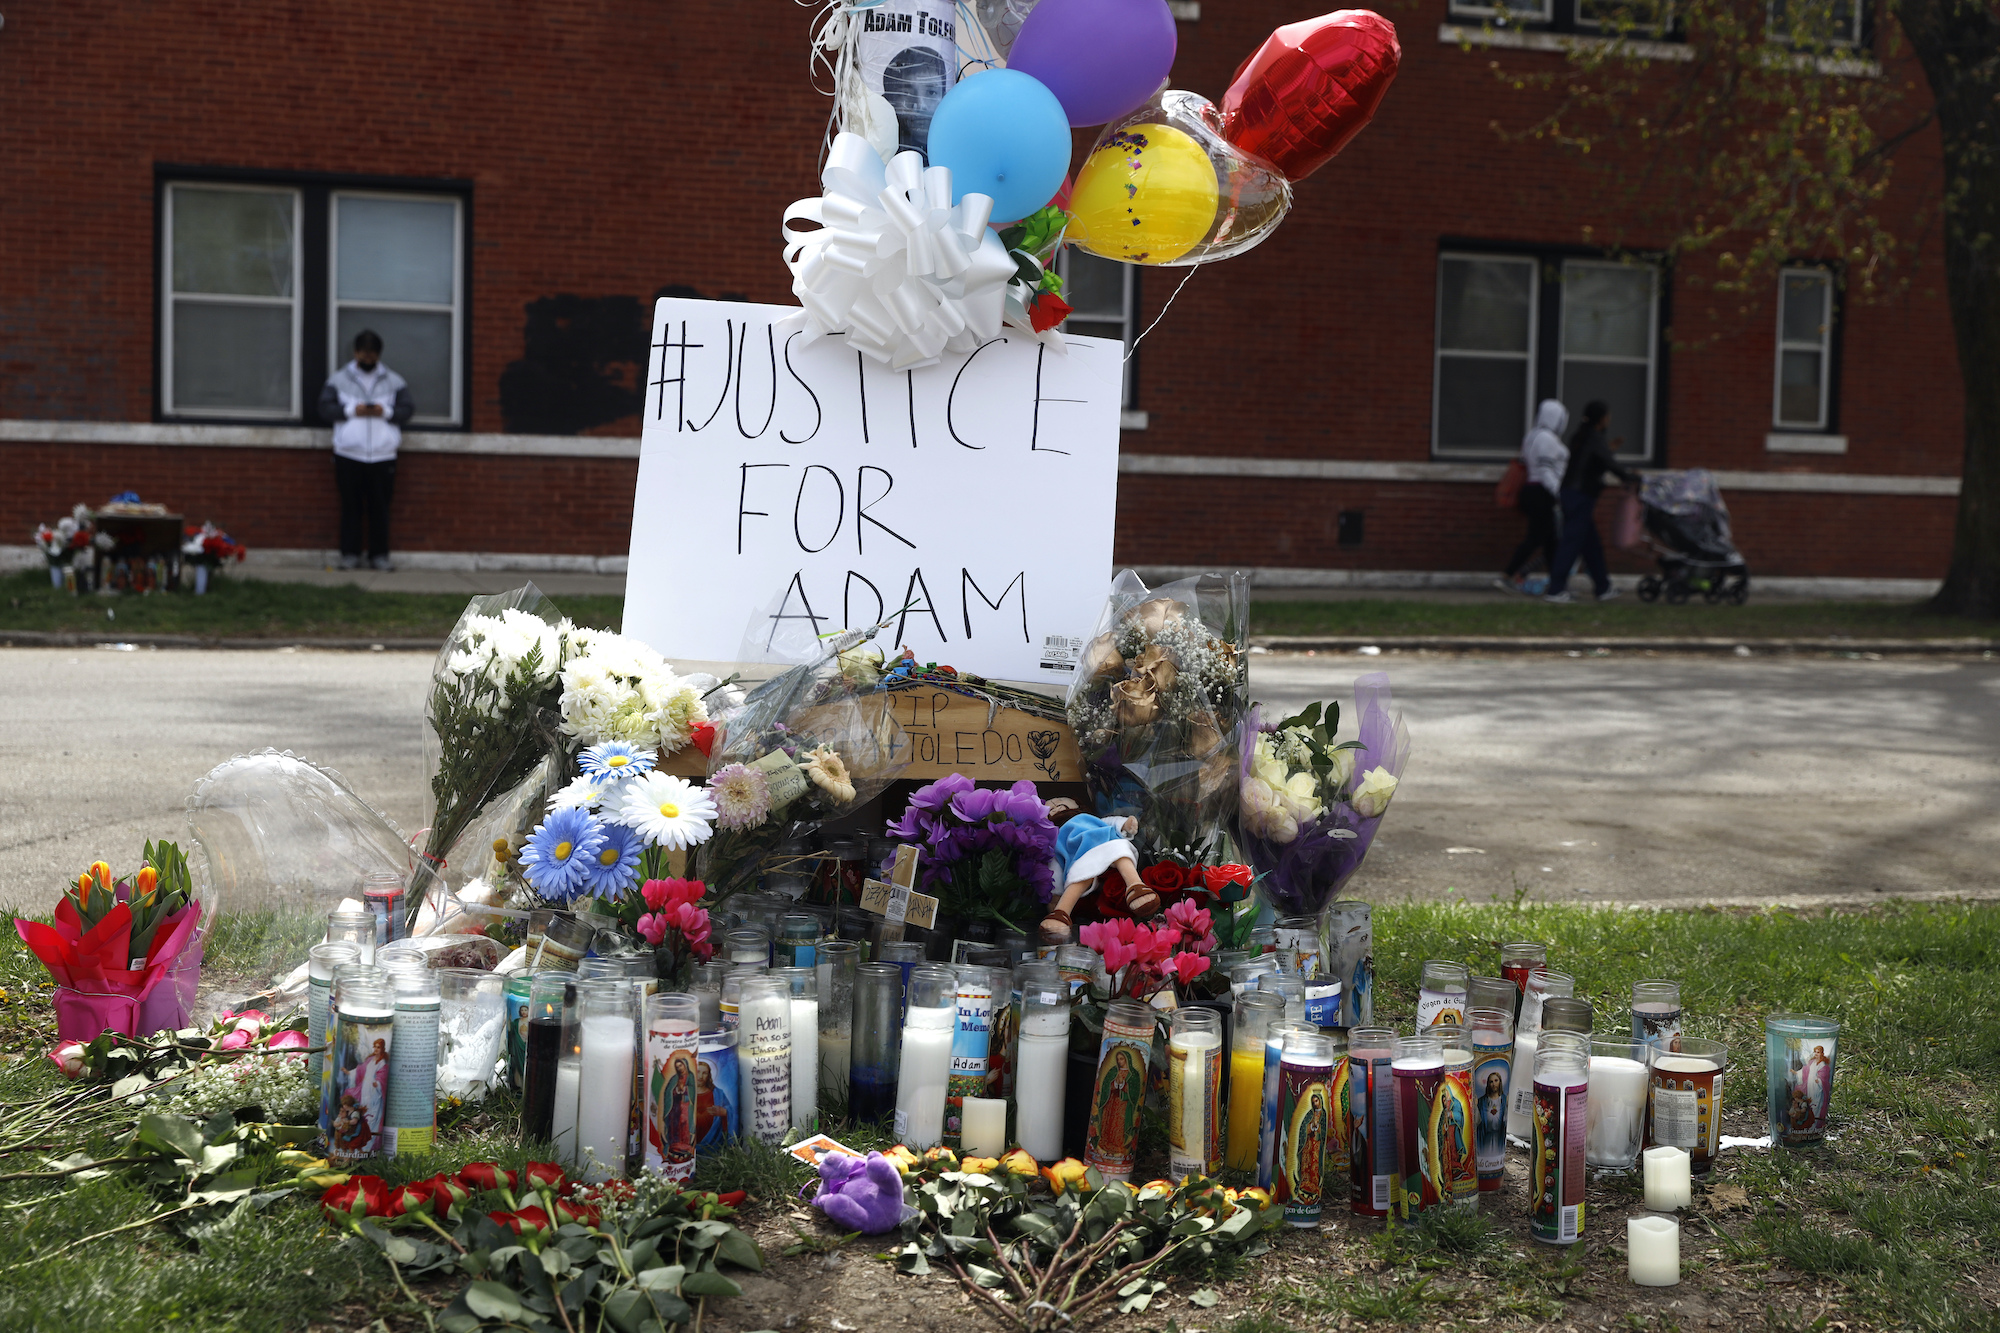 A memorial near the spot where 13-year-old Adam Toledo was shot by a police officer in Chicago's Little Village neighborhood